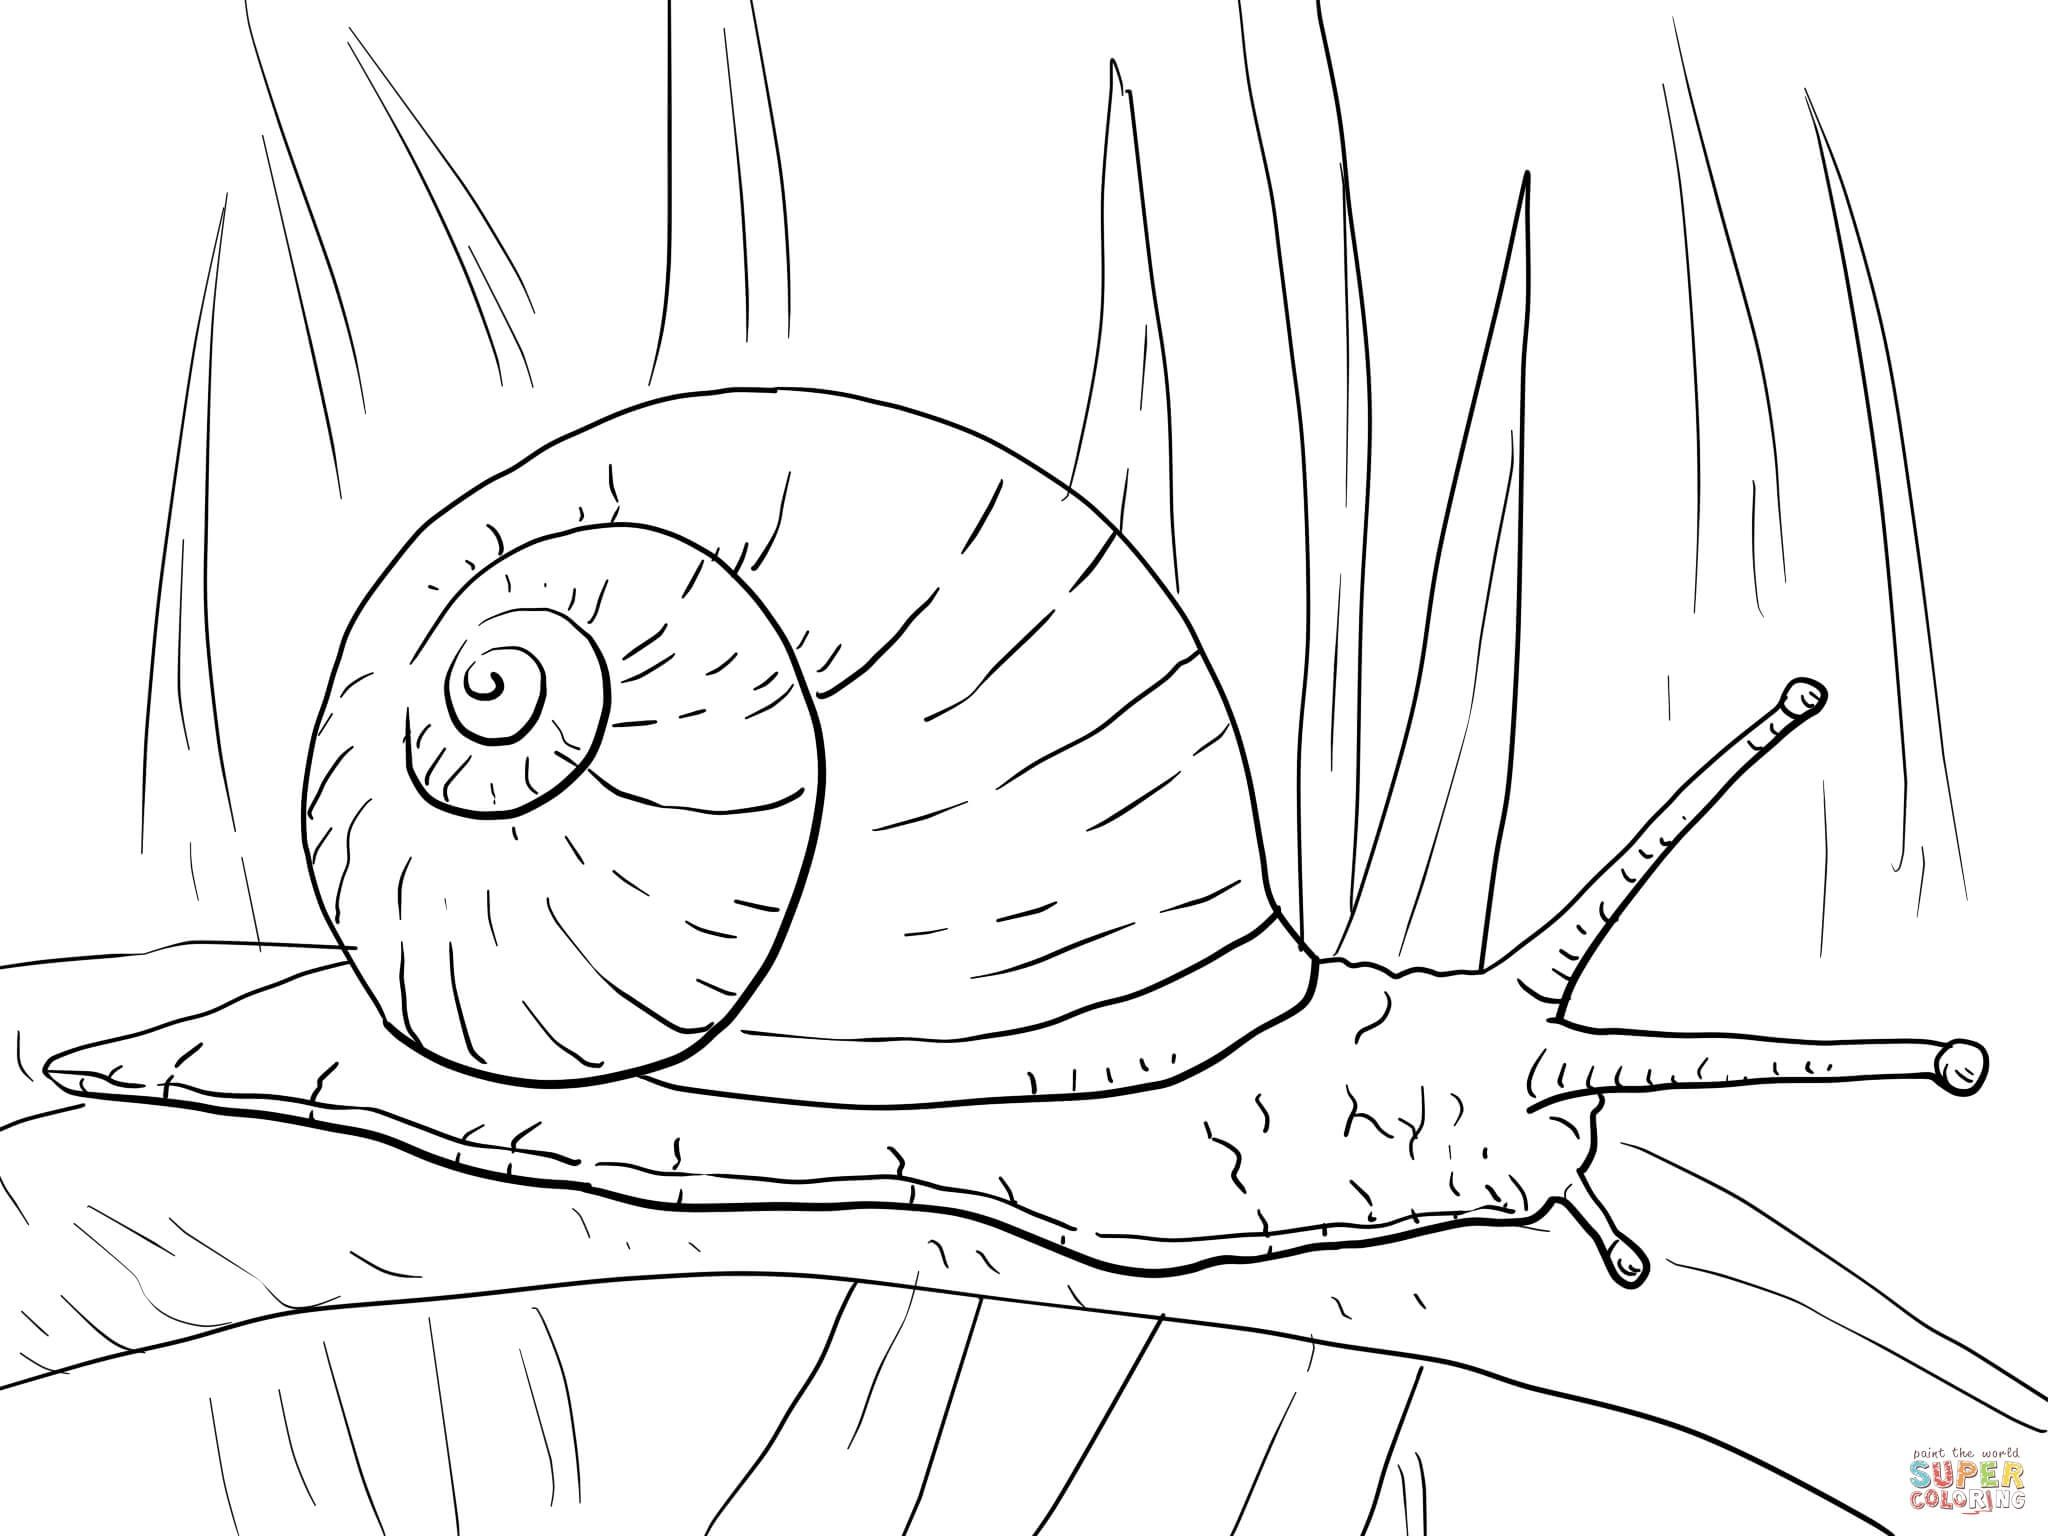 Writing Garden Snail Coloring Page Free Printable Coloring Pages ...